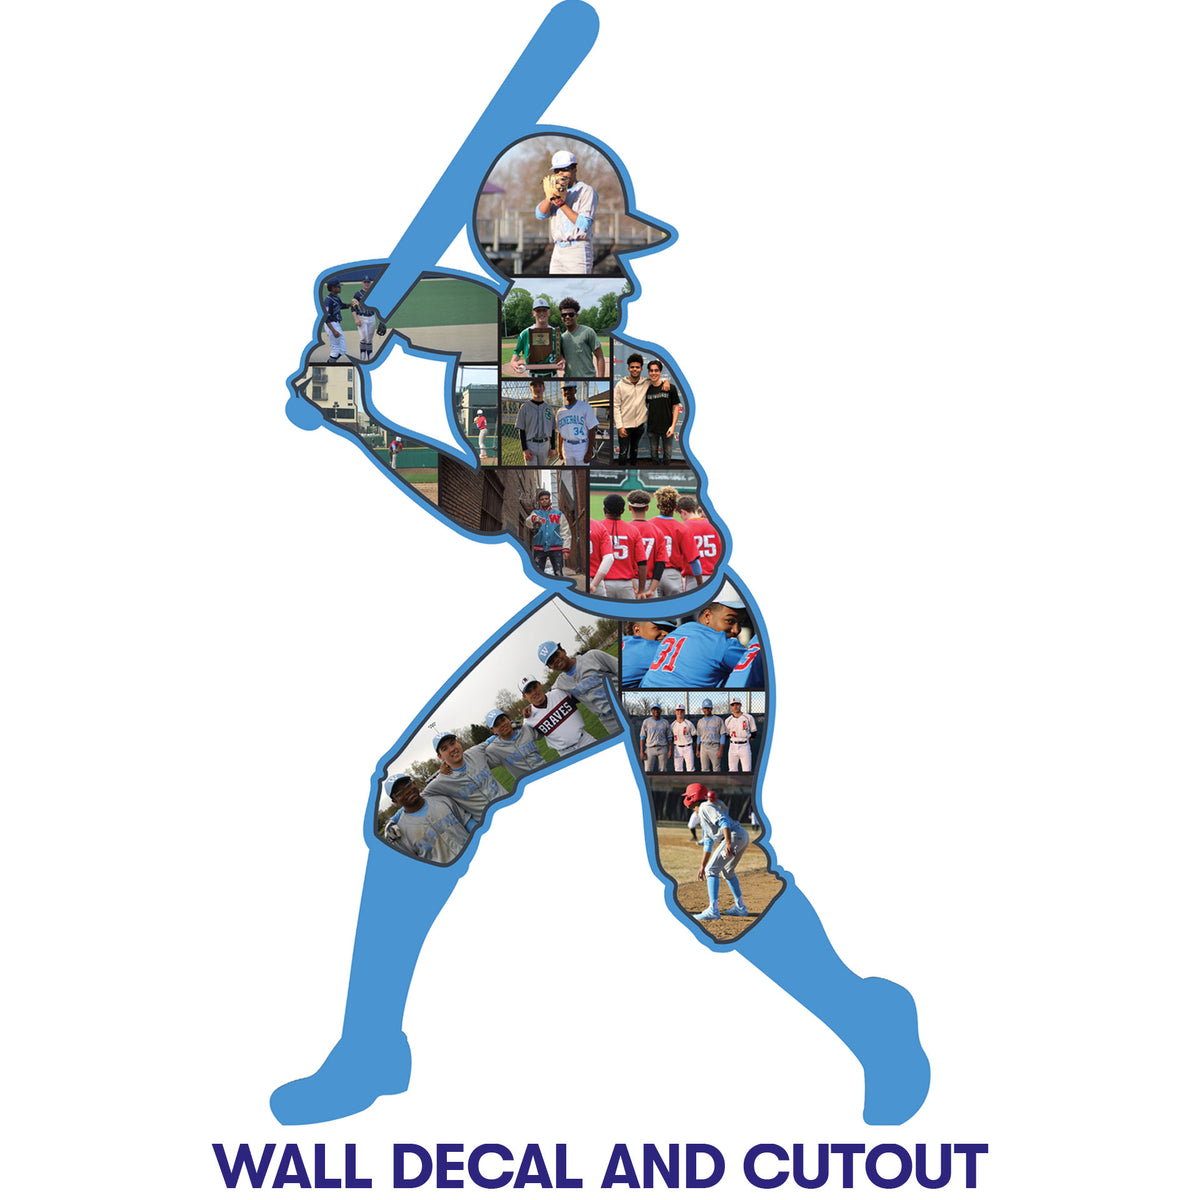 5 ft. 10 in. Baseball Player Photo Cutout